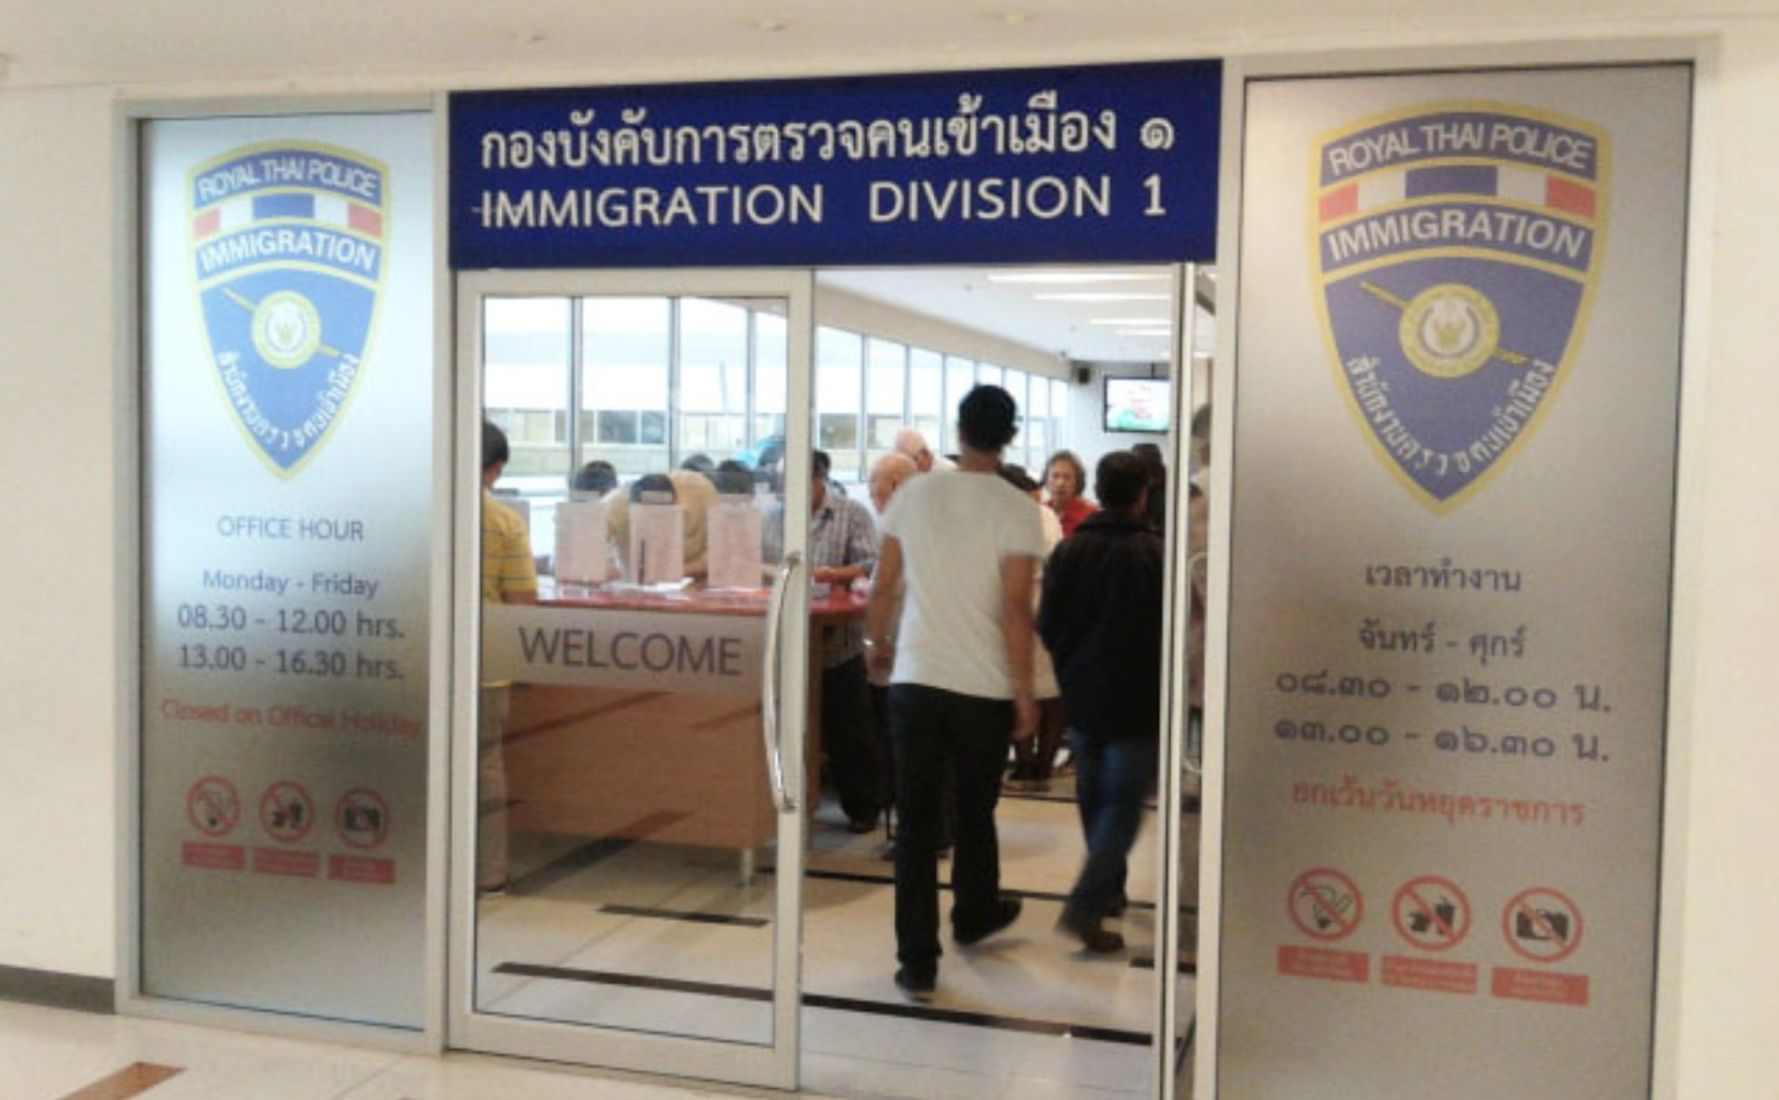 A glimmer of hope for expats unable to satisfy minimum income requirements | Thaiger